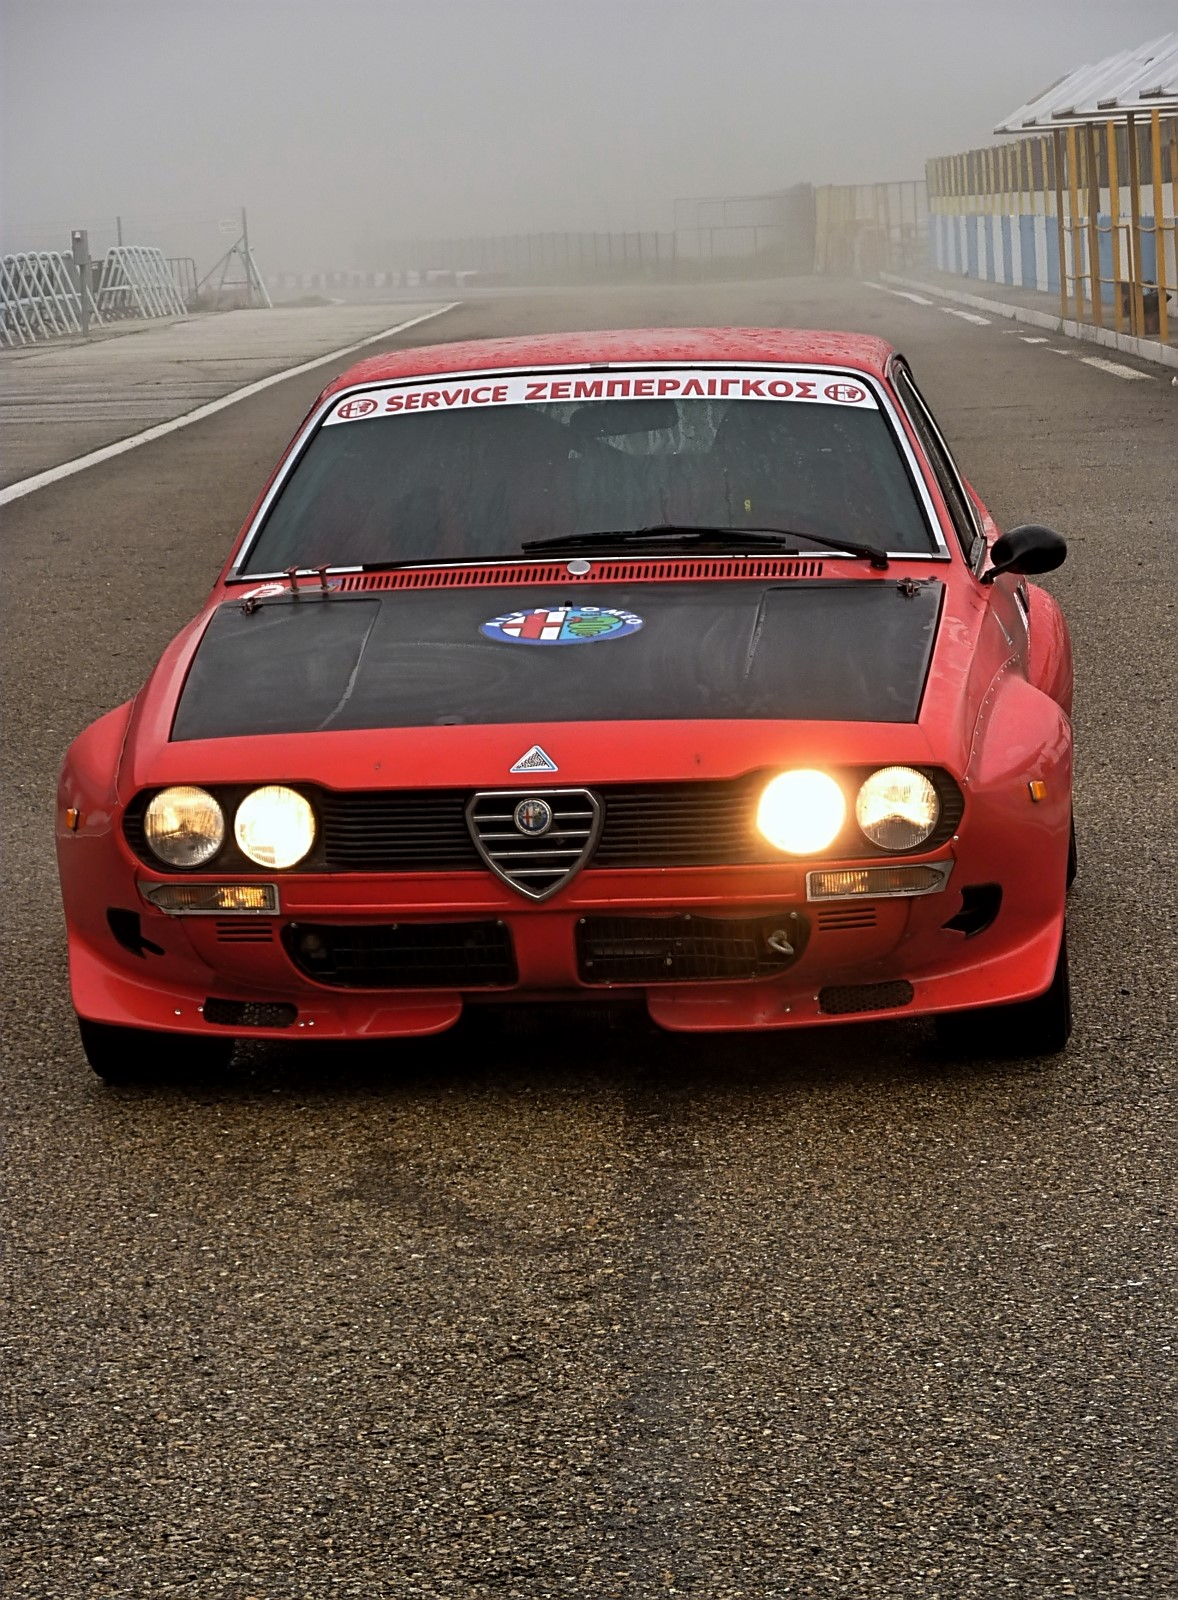 1974 Alfa Romeo Alfetta GT 1800 Group 2 (34)